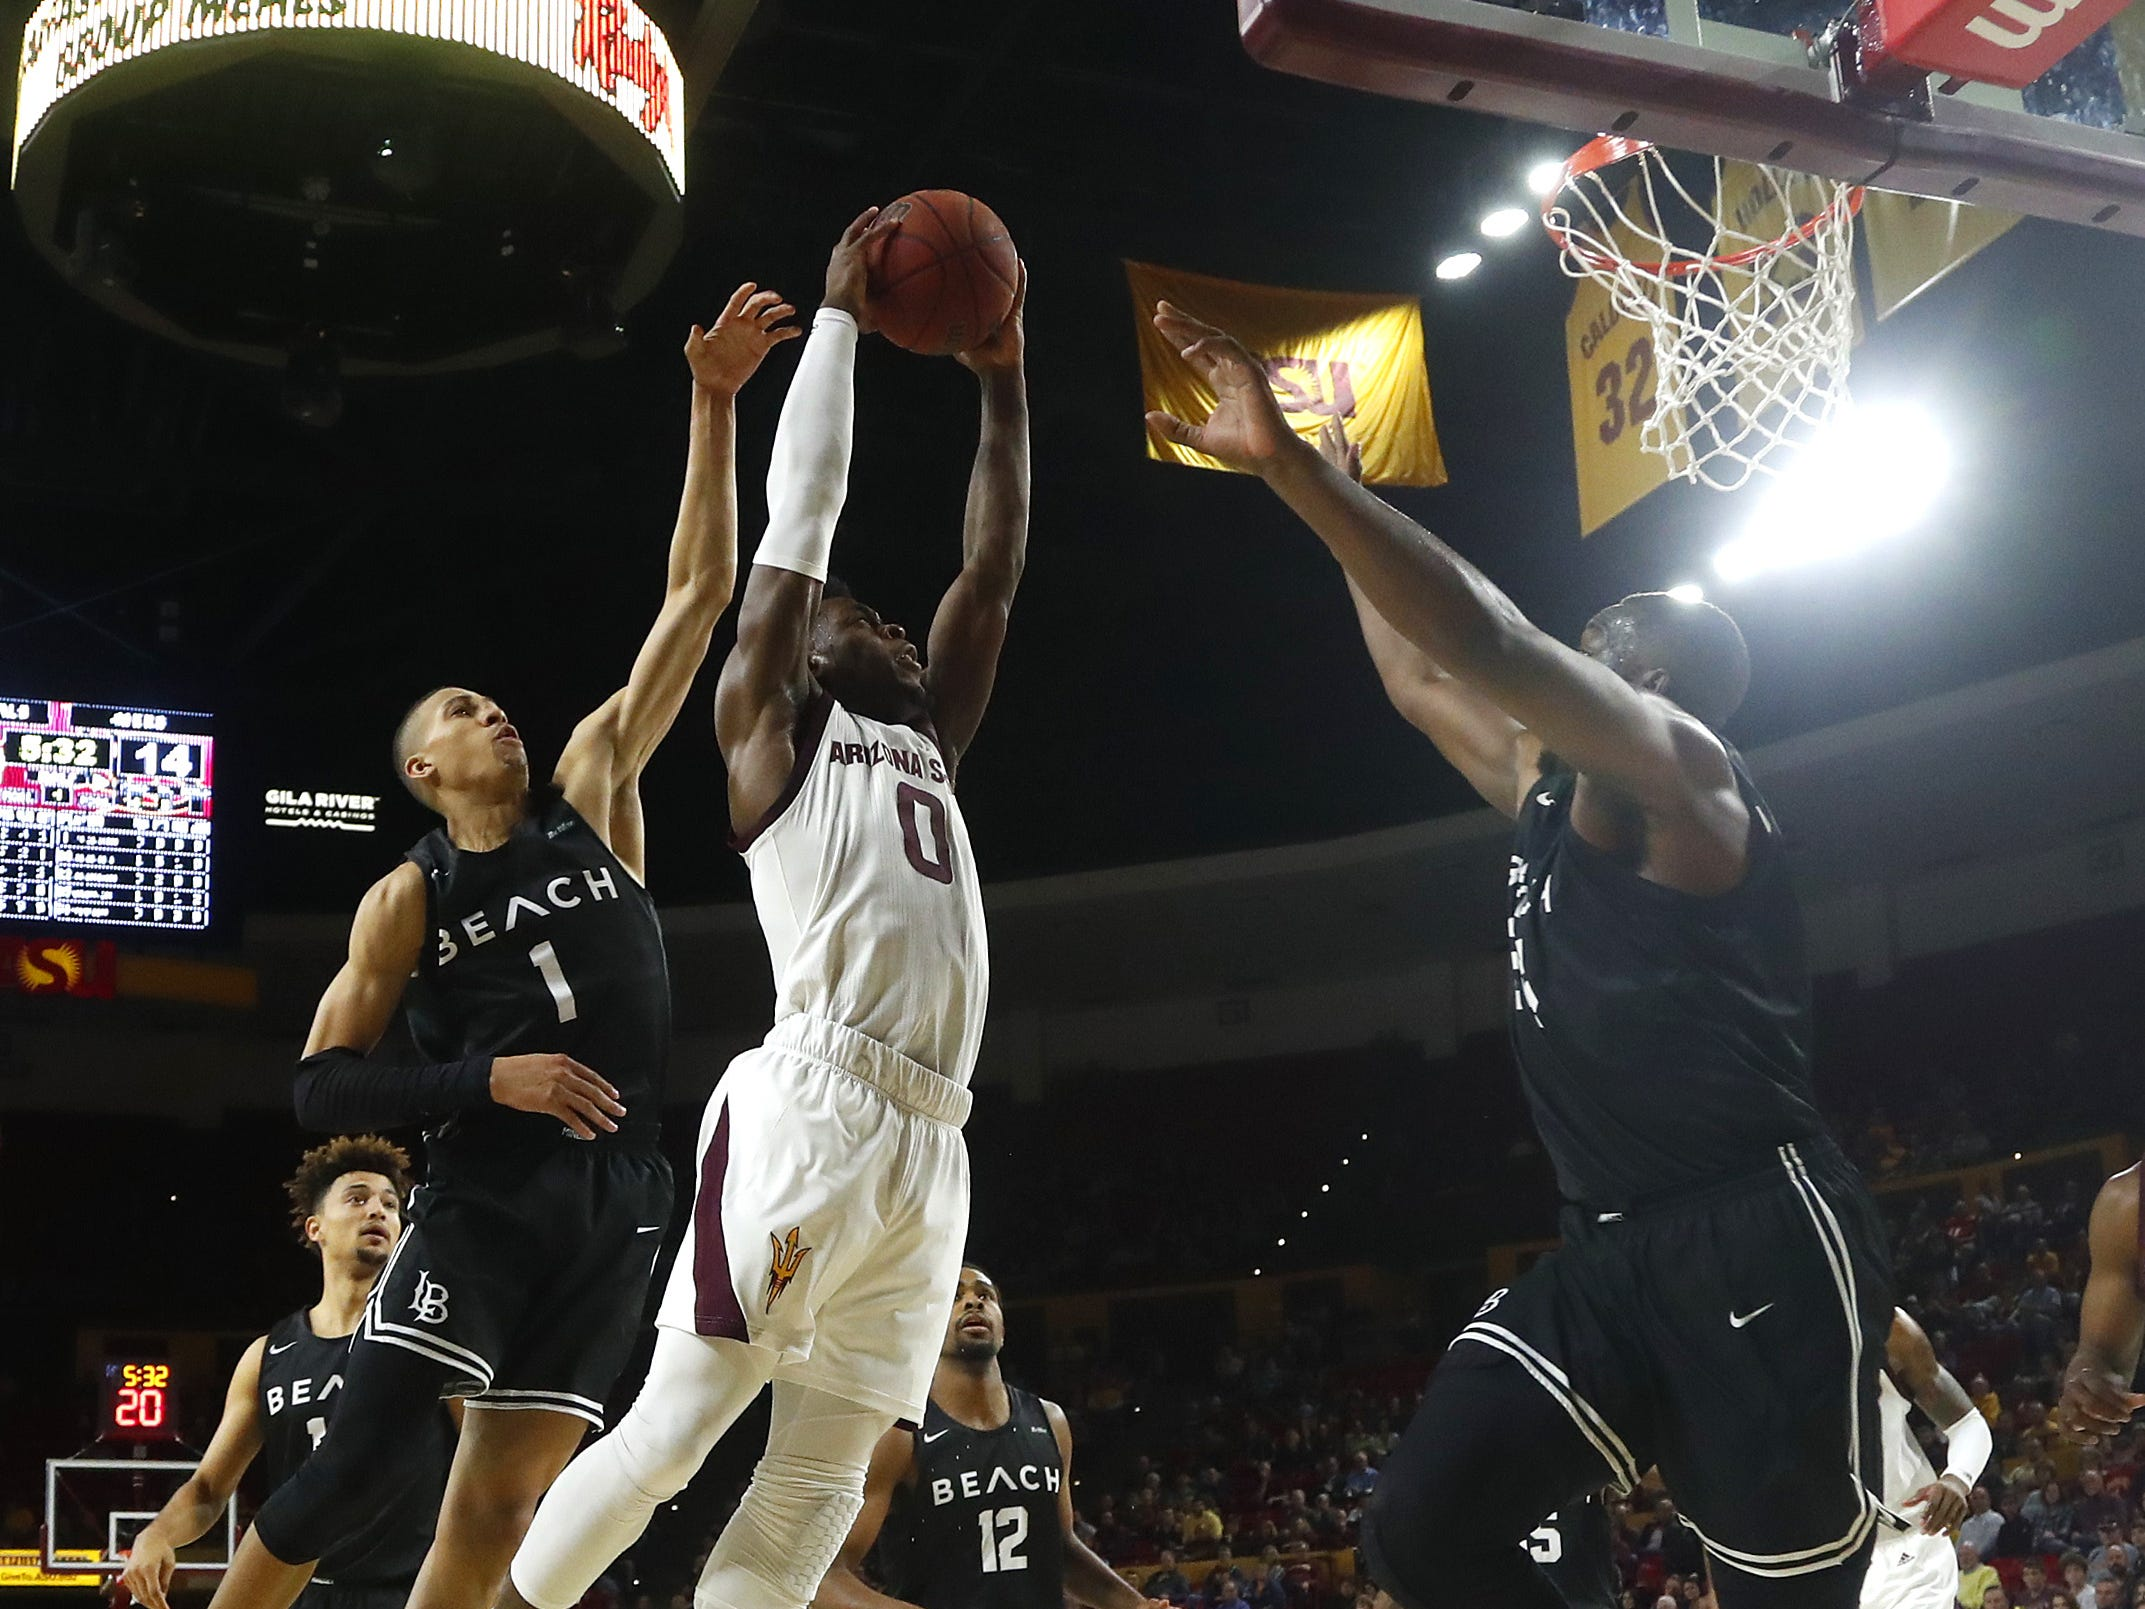 Arizona State's Luguentz Dort (0) shoots against Long Beach State's Ron Freeman (1) during the first half at Wells Fargo Arena in Tempe, Ariz. on November 12, 2018.